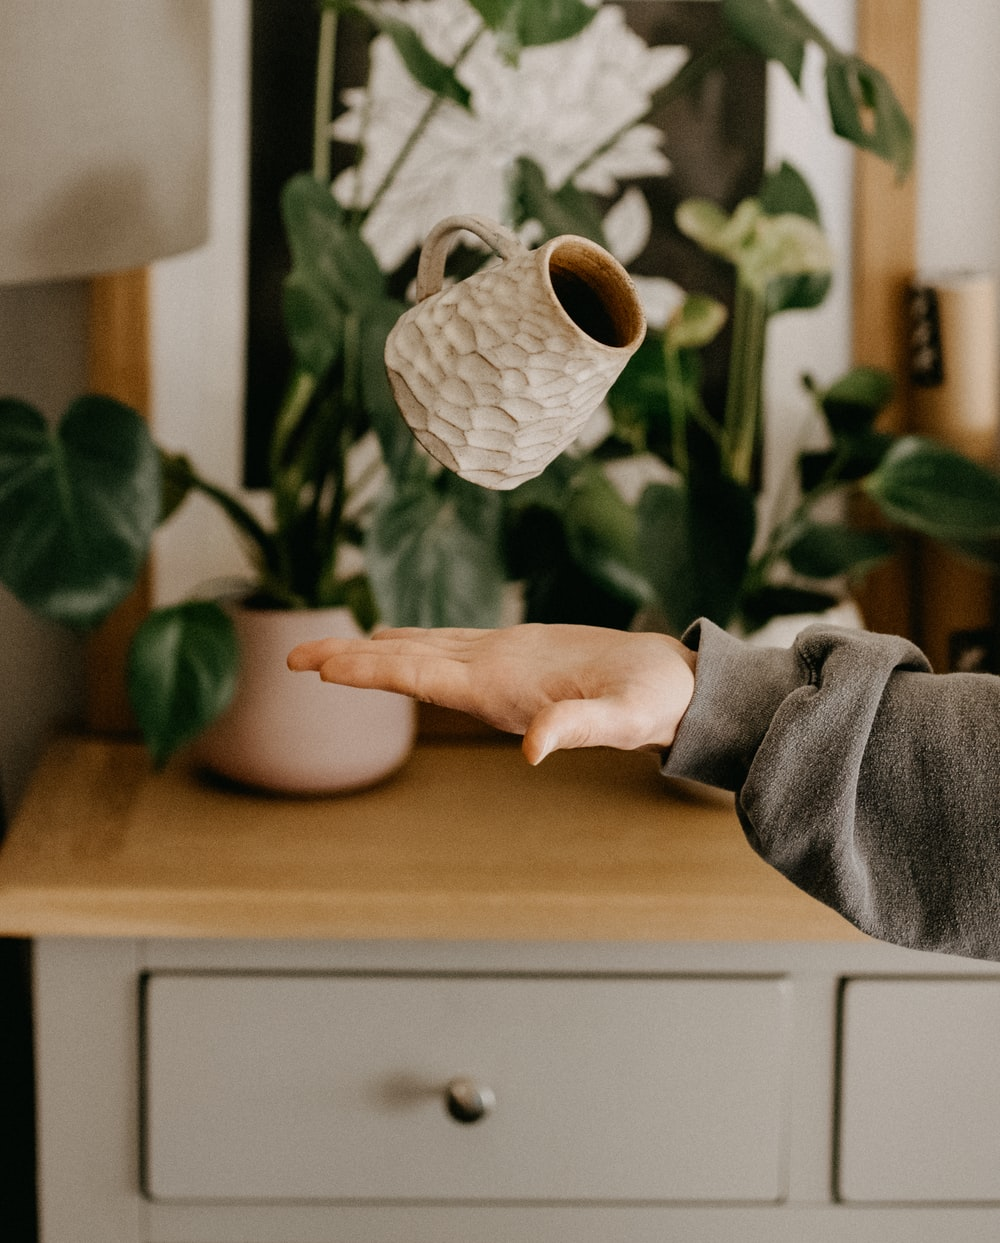 person in gray sweater holding white ceramic vase